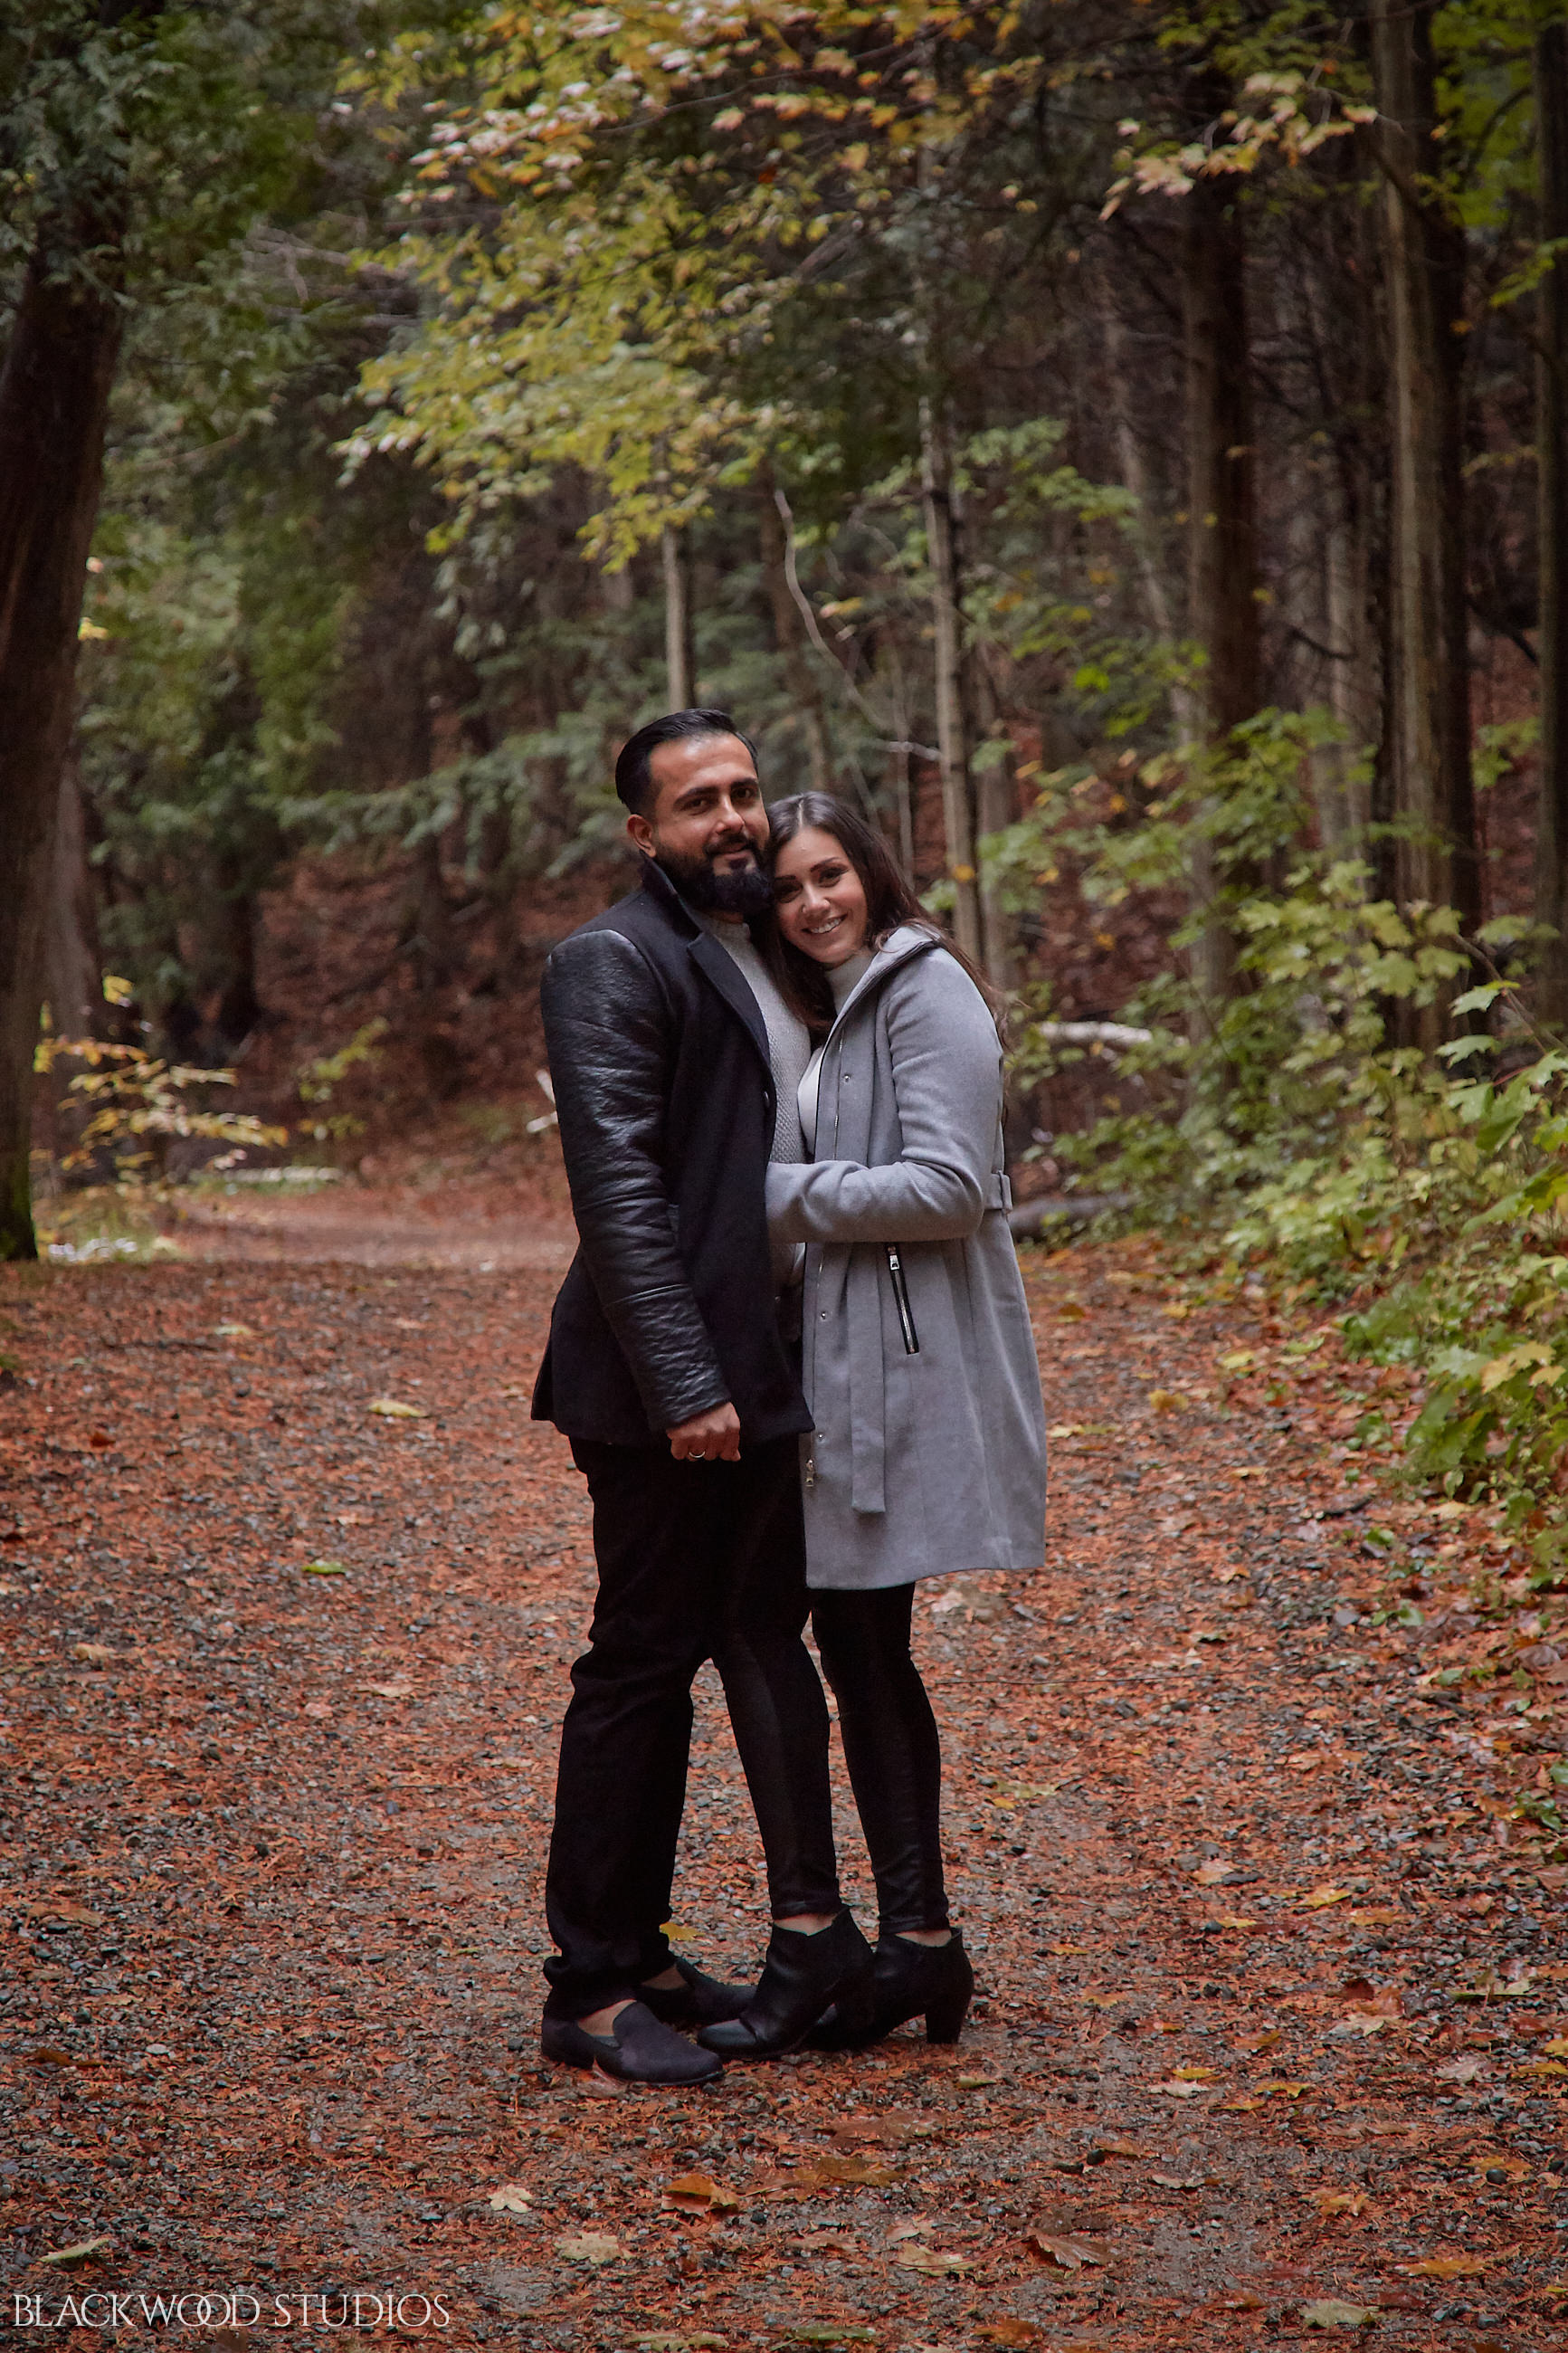 Blackwood-Studios-20181028172536-Farah-and-Zain-Engagement-photography-Belfountain-Conservation-Area-Caledon-Ontario.jpg